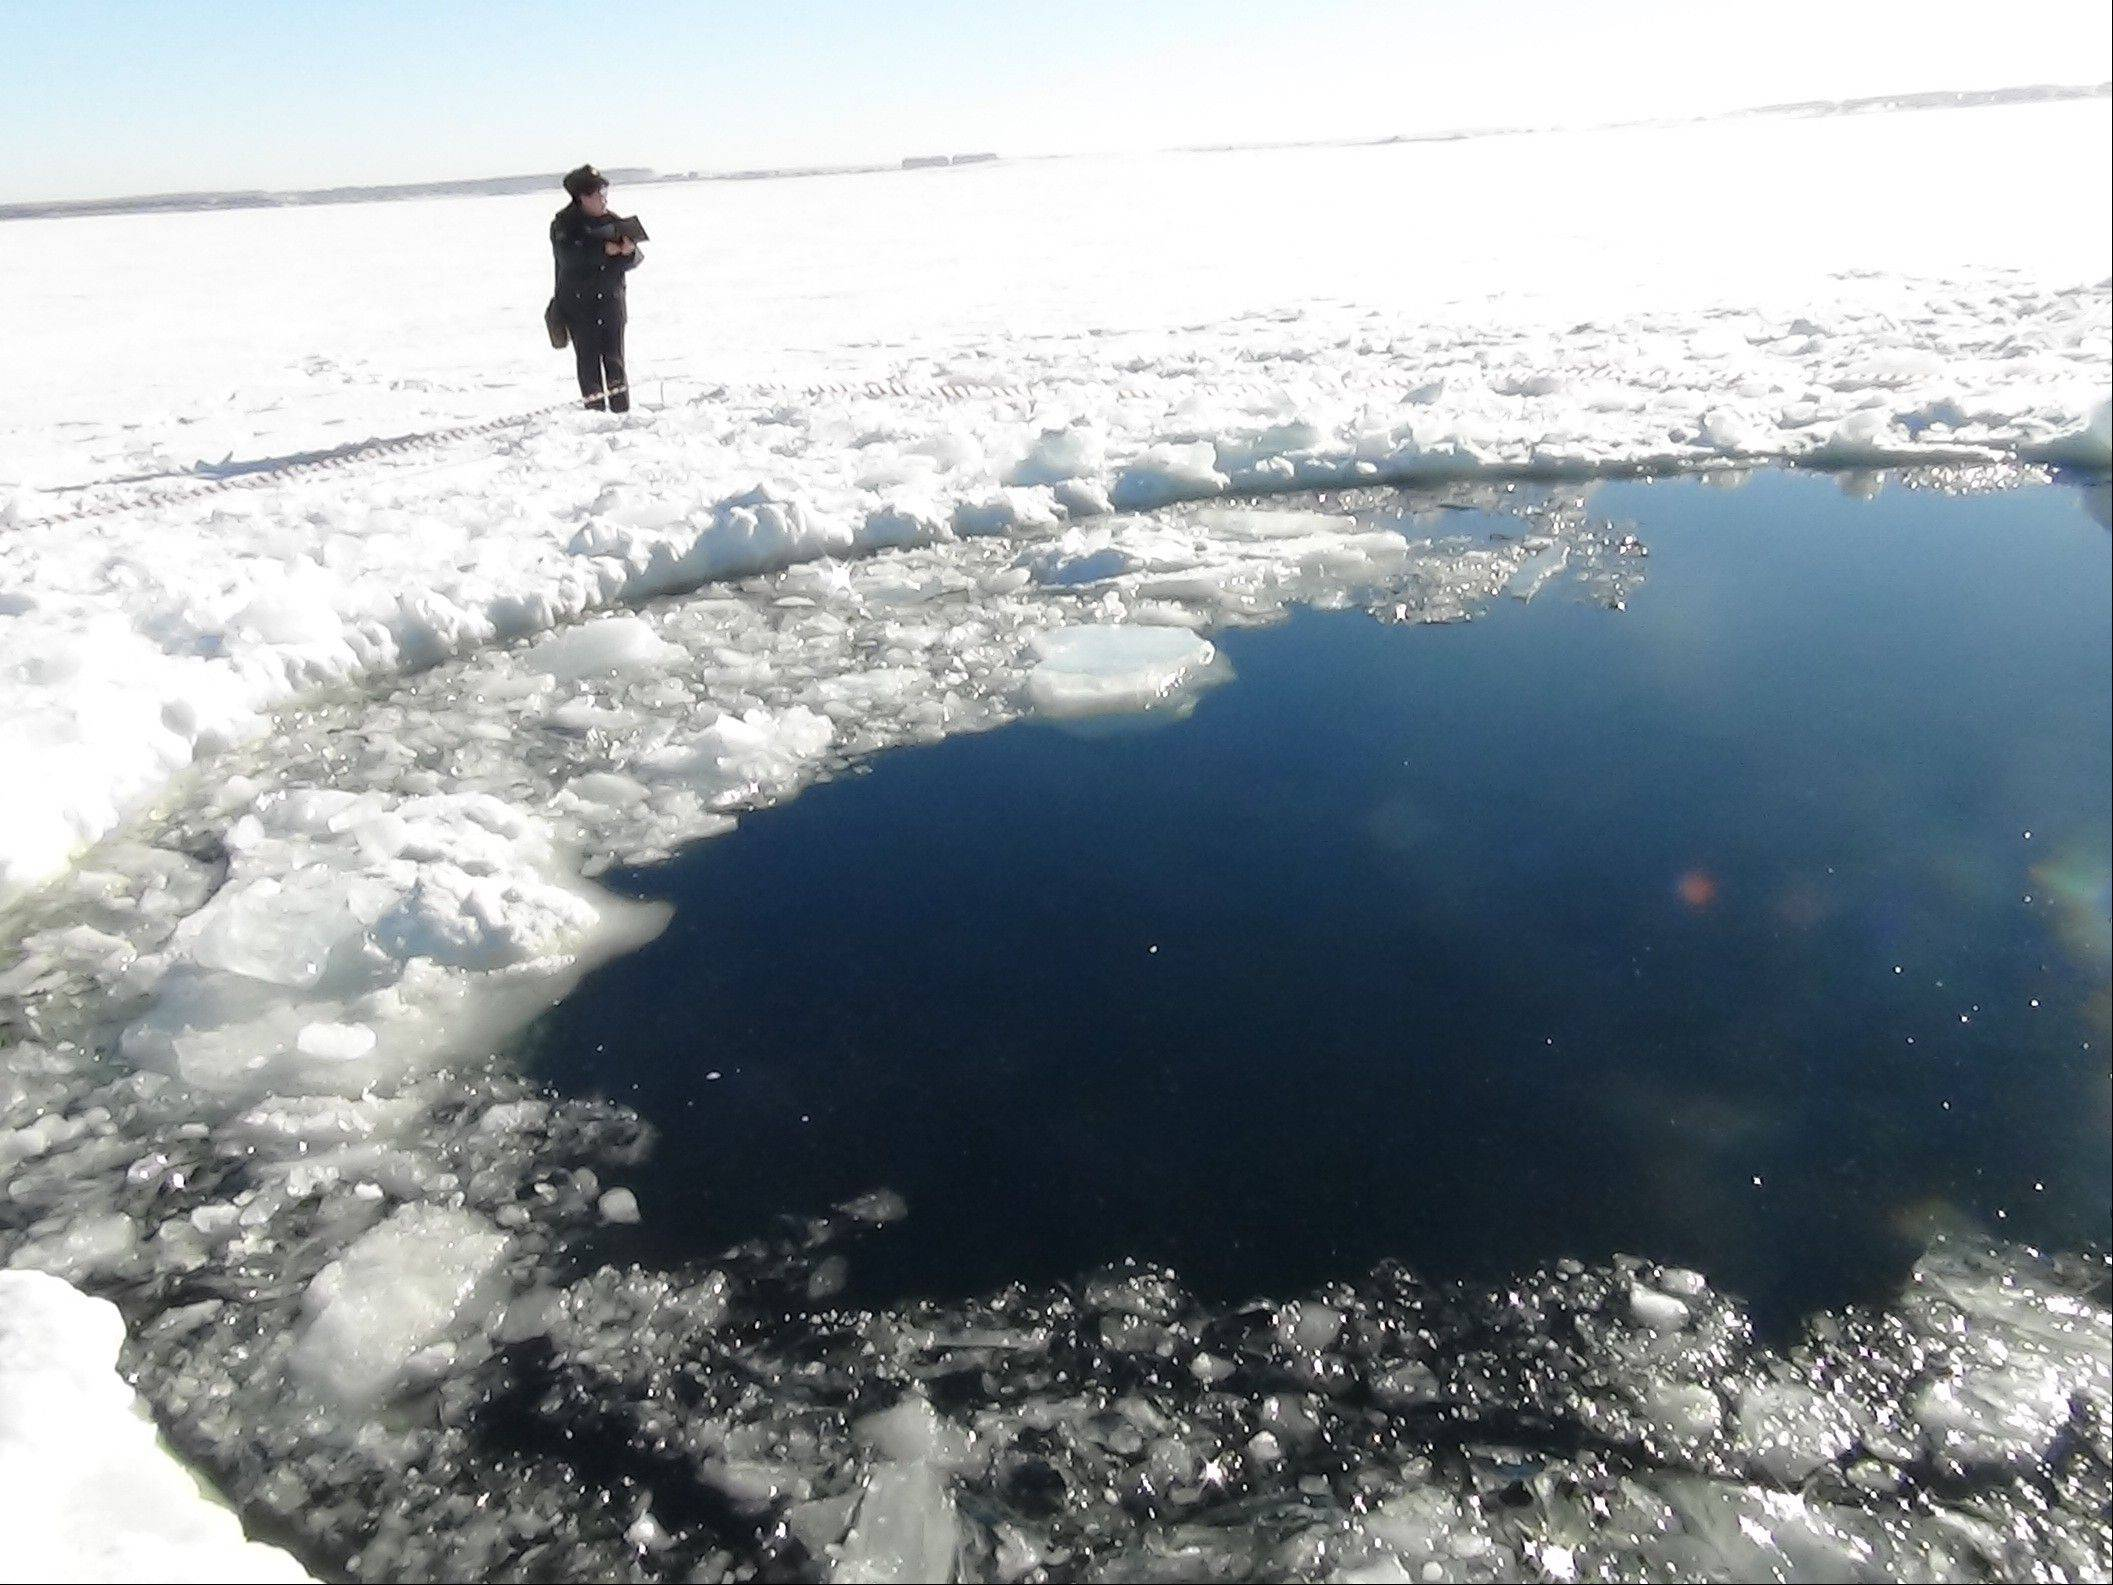 A circular hole in the ice of Chebarkul Lake where a meteor fragment reportedly struck the lake near Chelyabinsk, about 930 miles east of Moscow, Russia, Friday, Feb. 15, 2013. A meteor streaked across the sky and exploded over Russia's Ural Mountains with the power of an atomic bomb Friday, its sonic blasts shattering countless windows and injuring nearly 1,000 people.